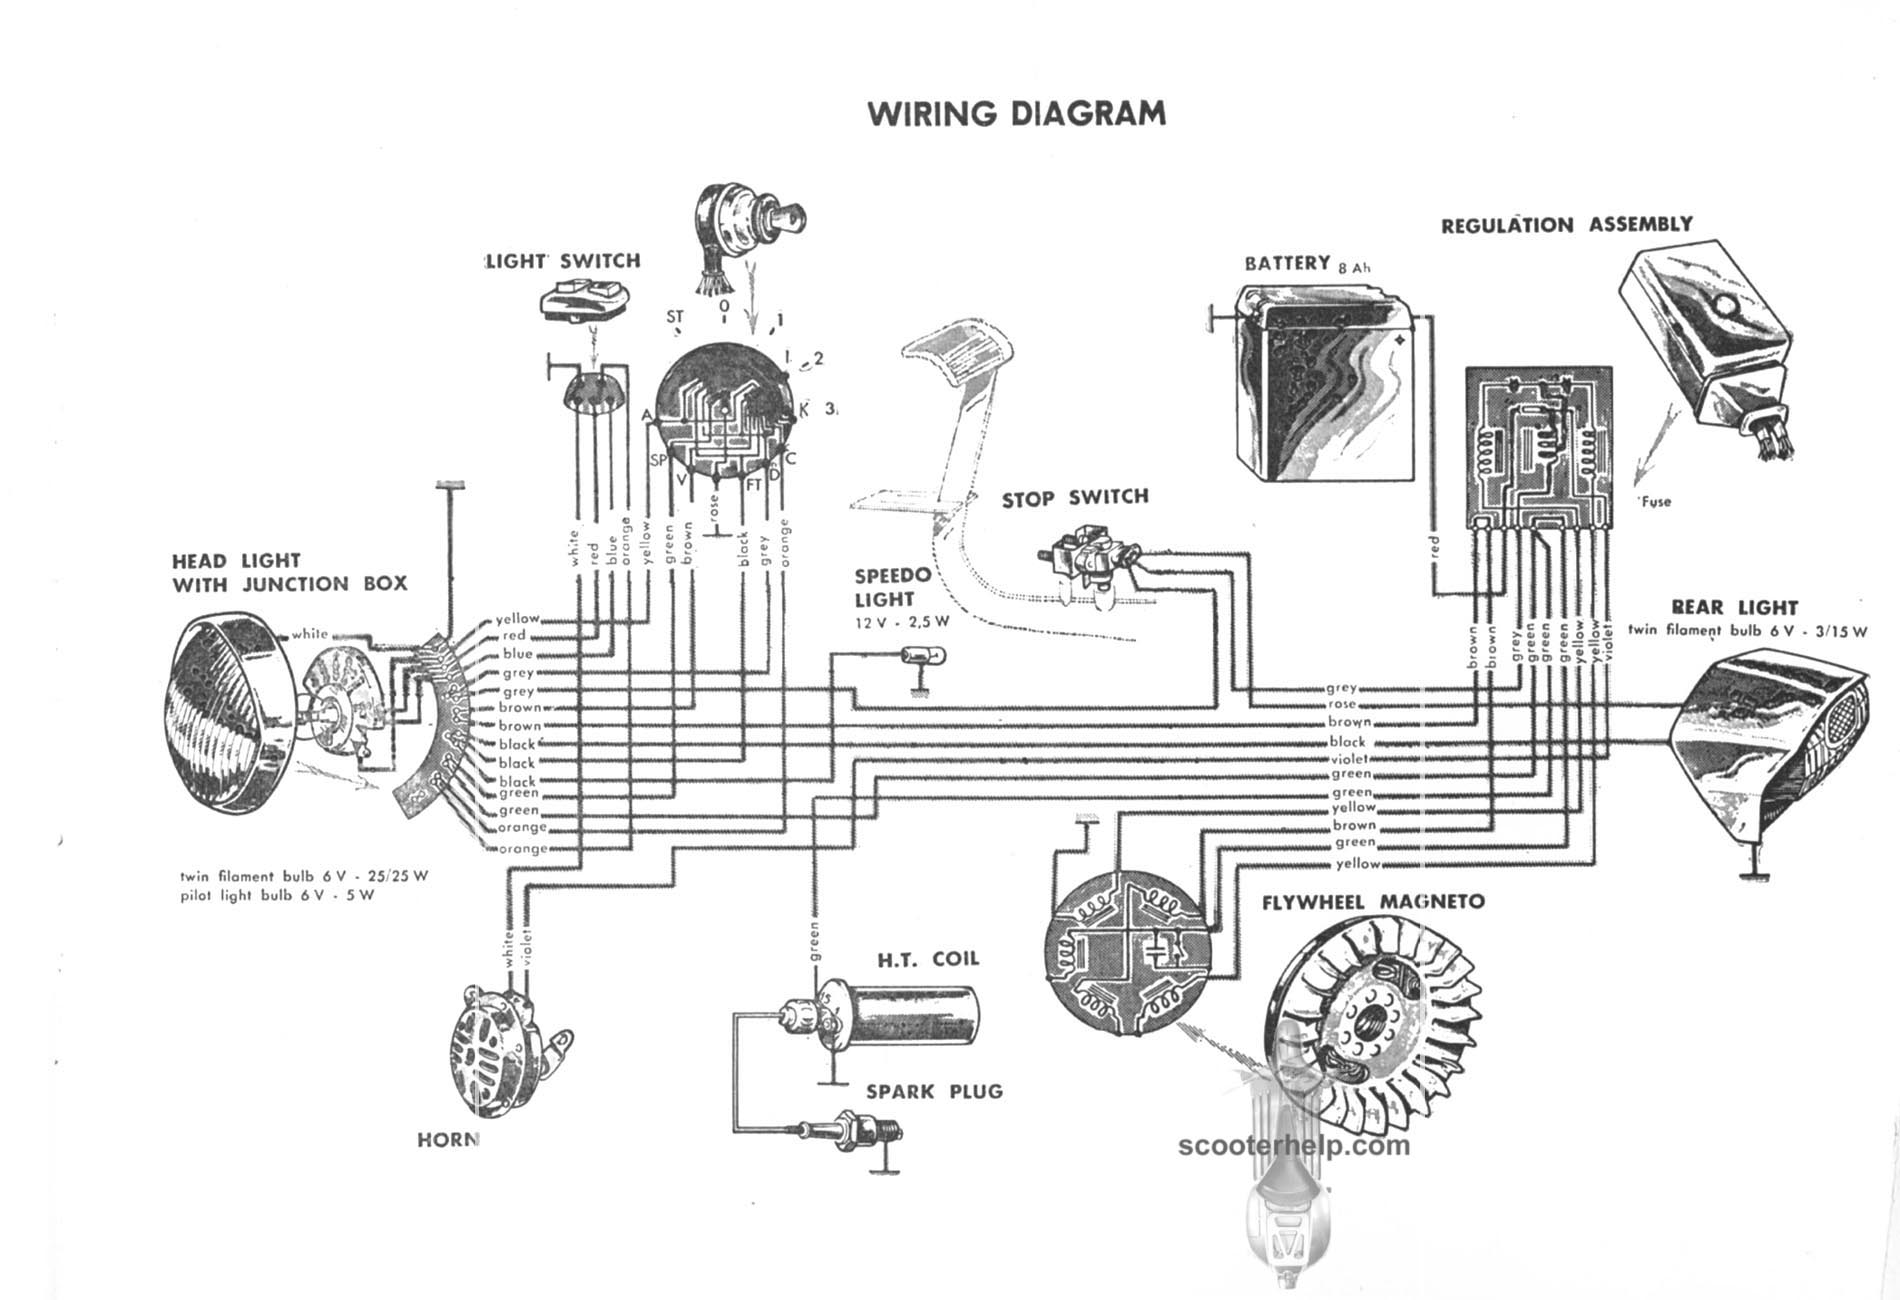 lambretta wiring diagram auto electrical wiring diagram u2022 rh 6weeks co uk